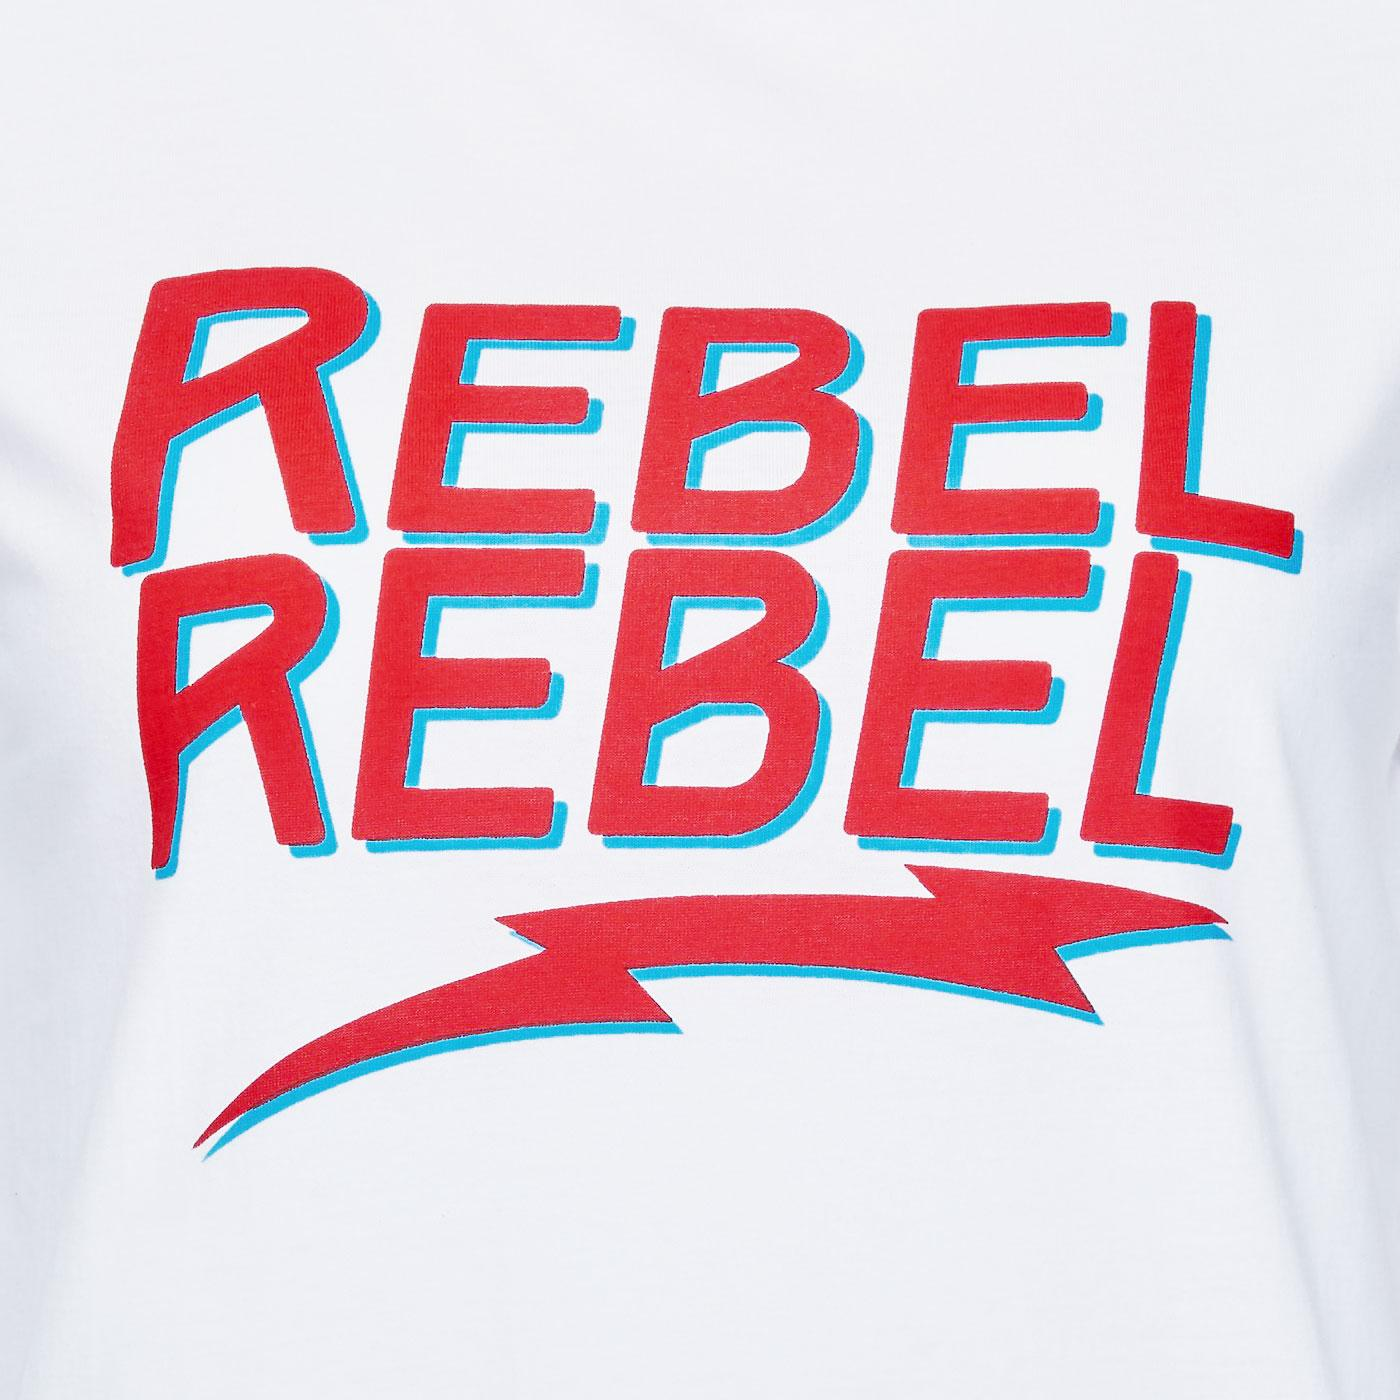 Close-up of Sugarhill Brighton Rebel Rebel t-shirt